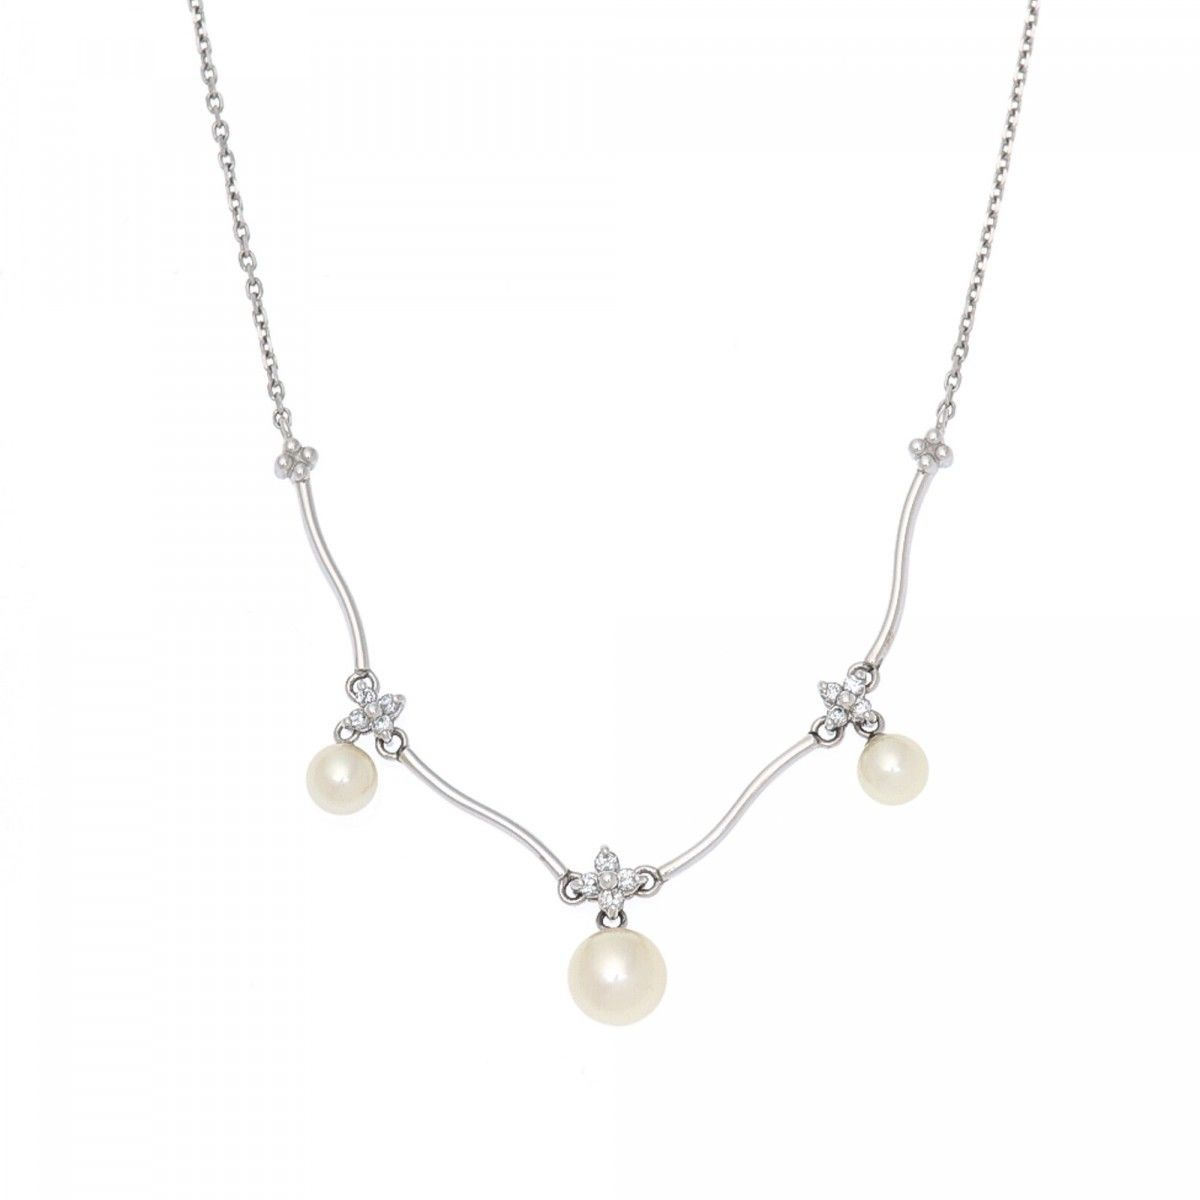 diamond bay cygnet necklace pearls pearl south product pendant keshi sea